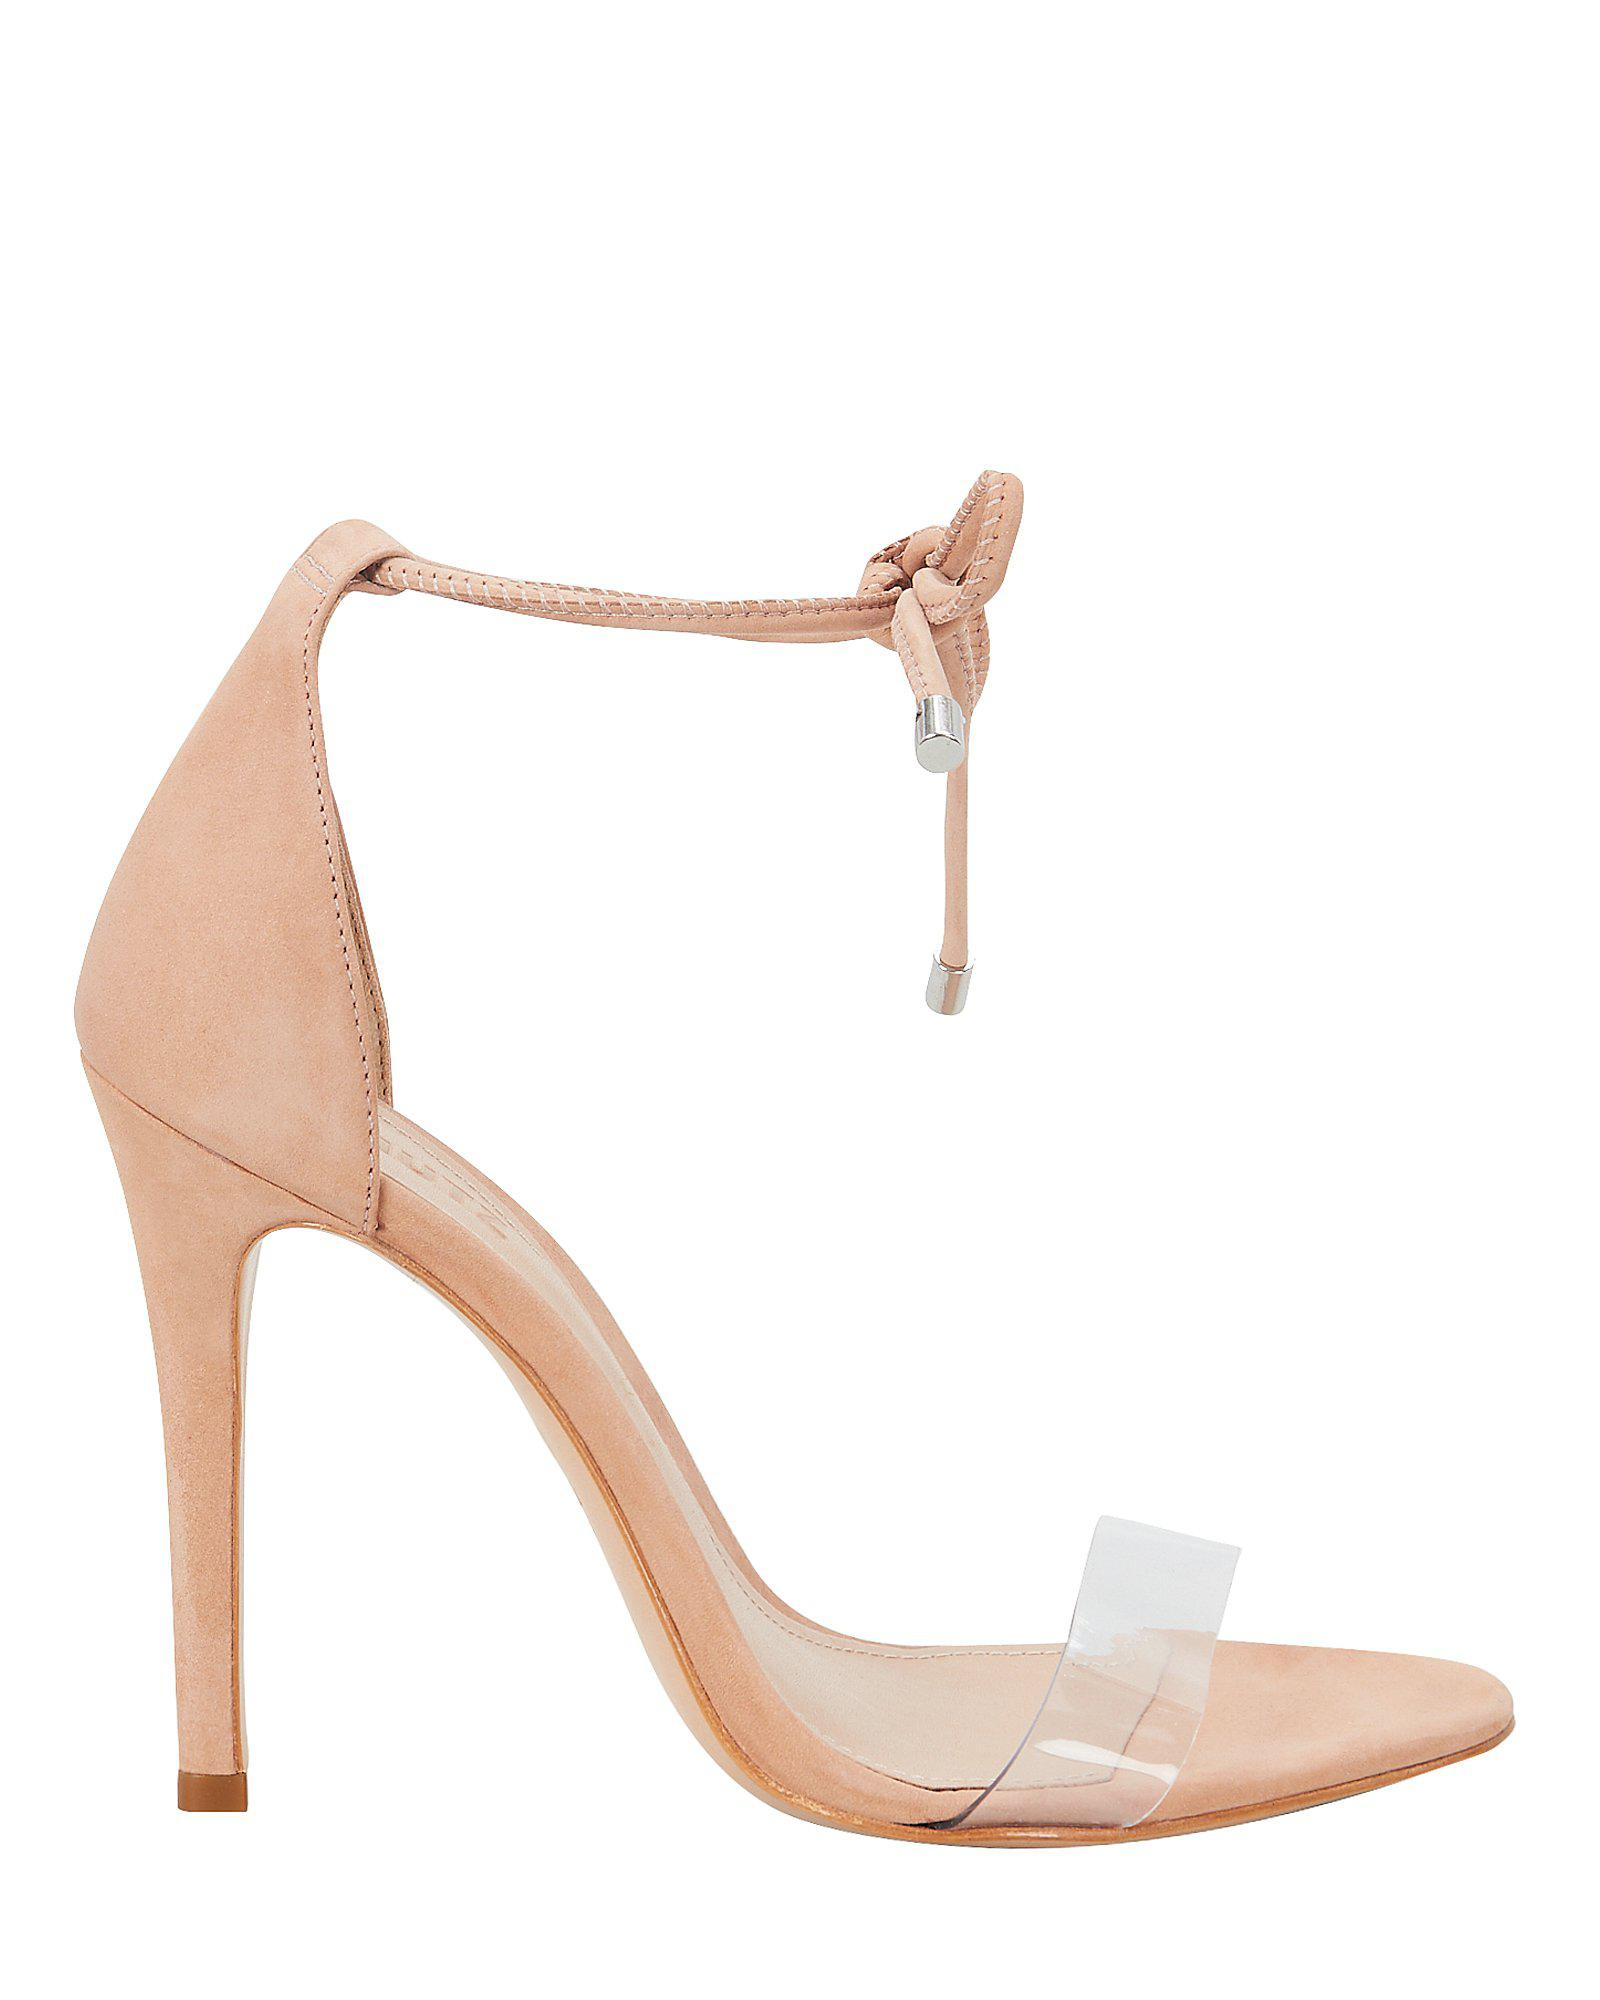 a87f6f03a82a Schutz - Natural Monique Pvc Vamp Strap Sandals - Lyst. View fullscreen